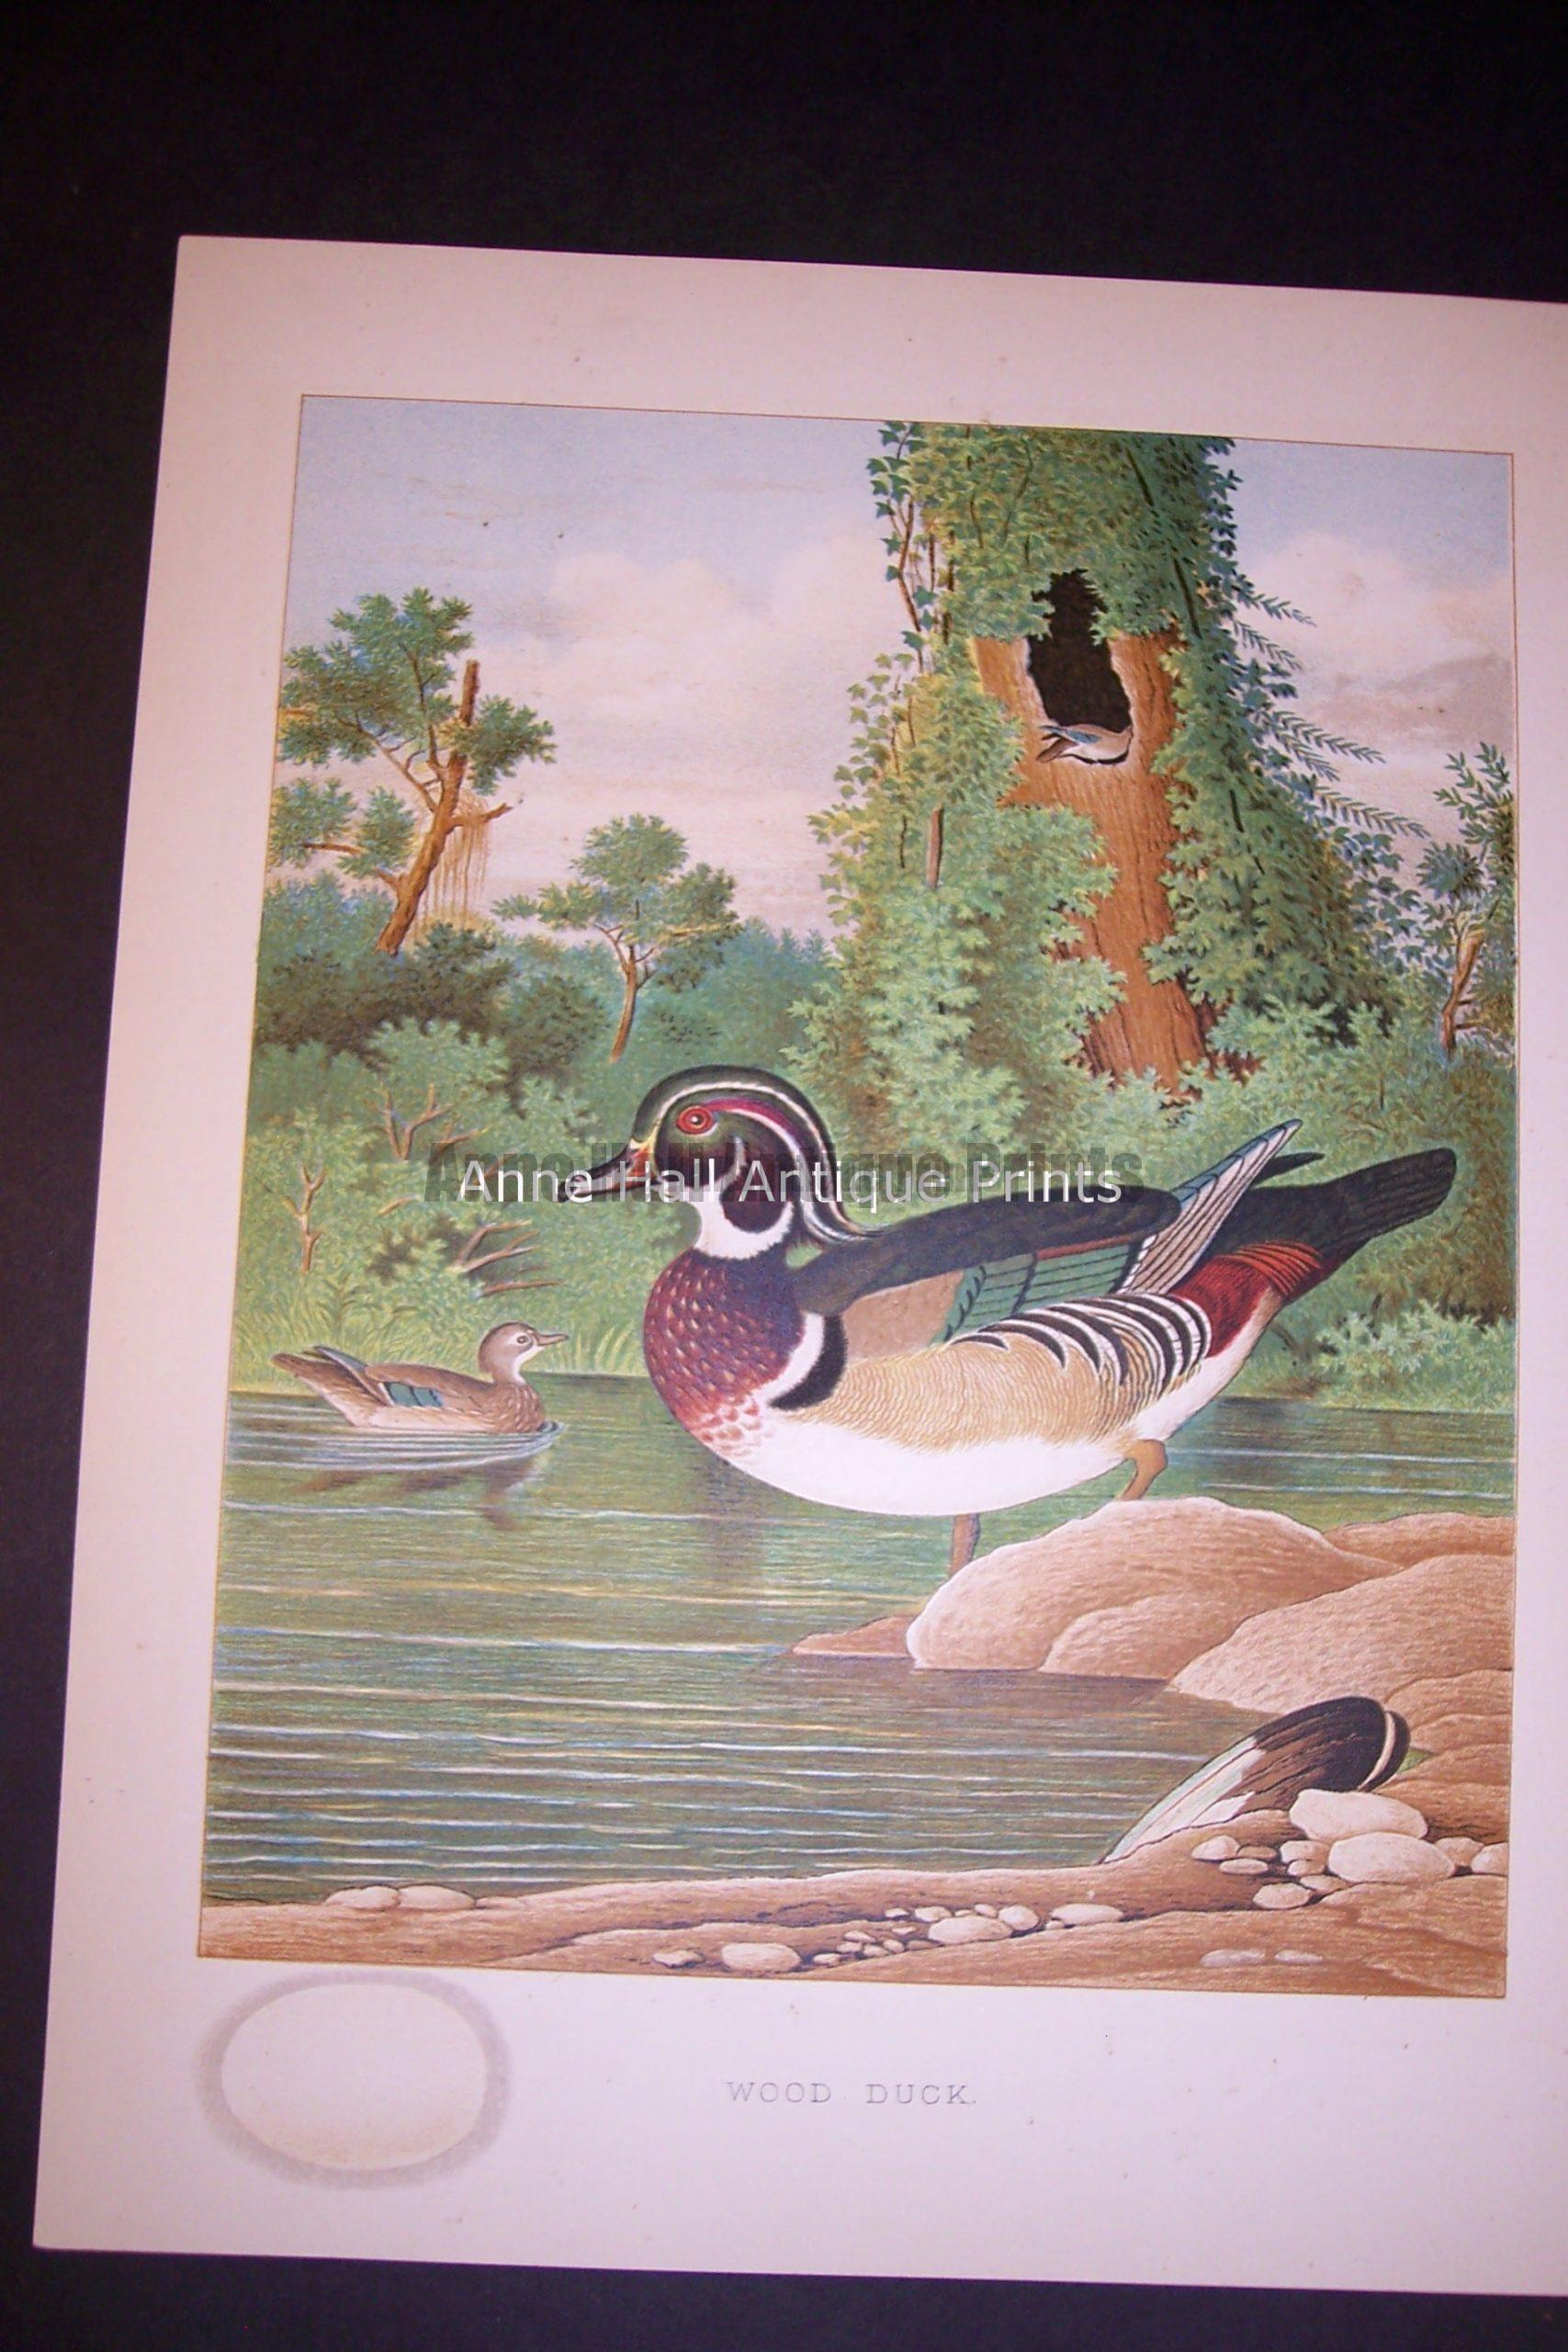 Thomas Gentry Wood Duck Print. Old Chromolithograph 0230